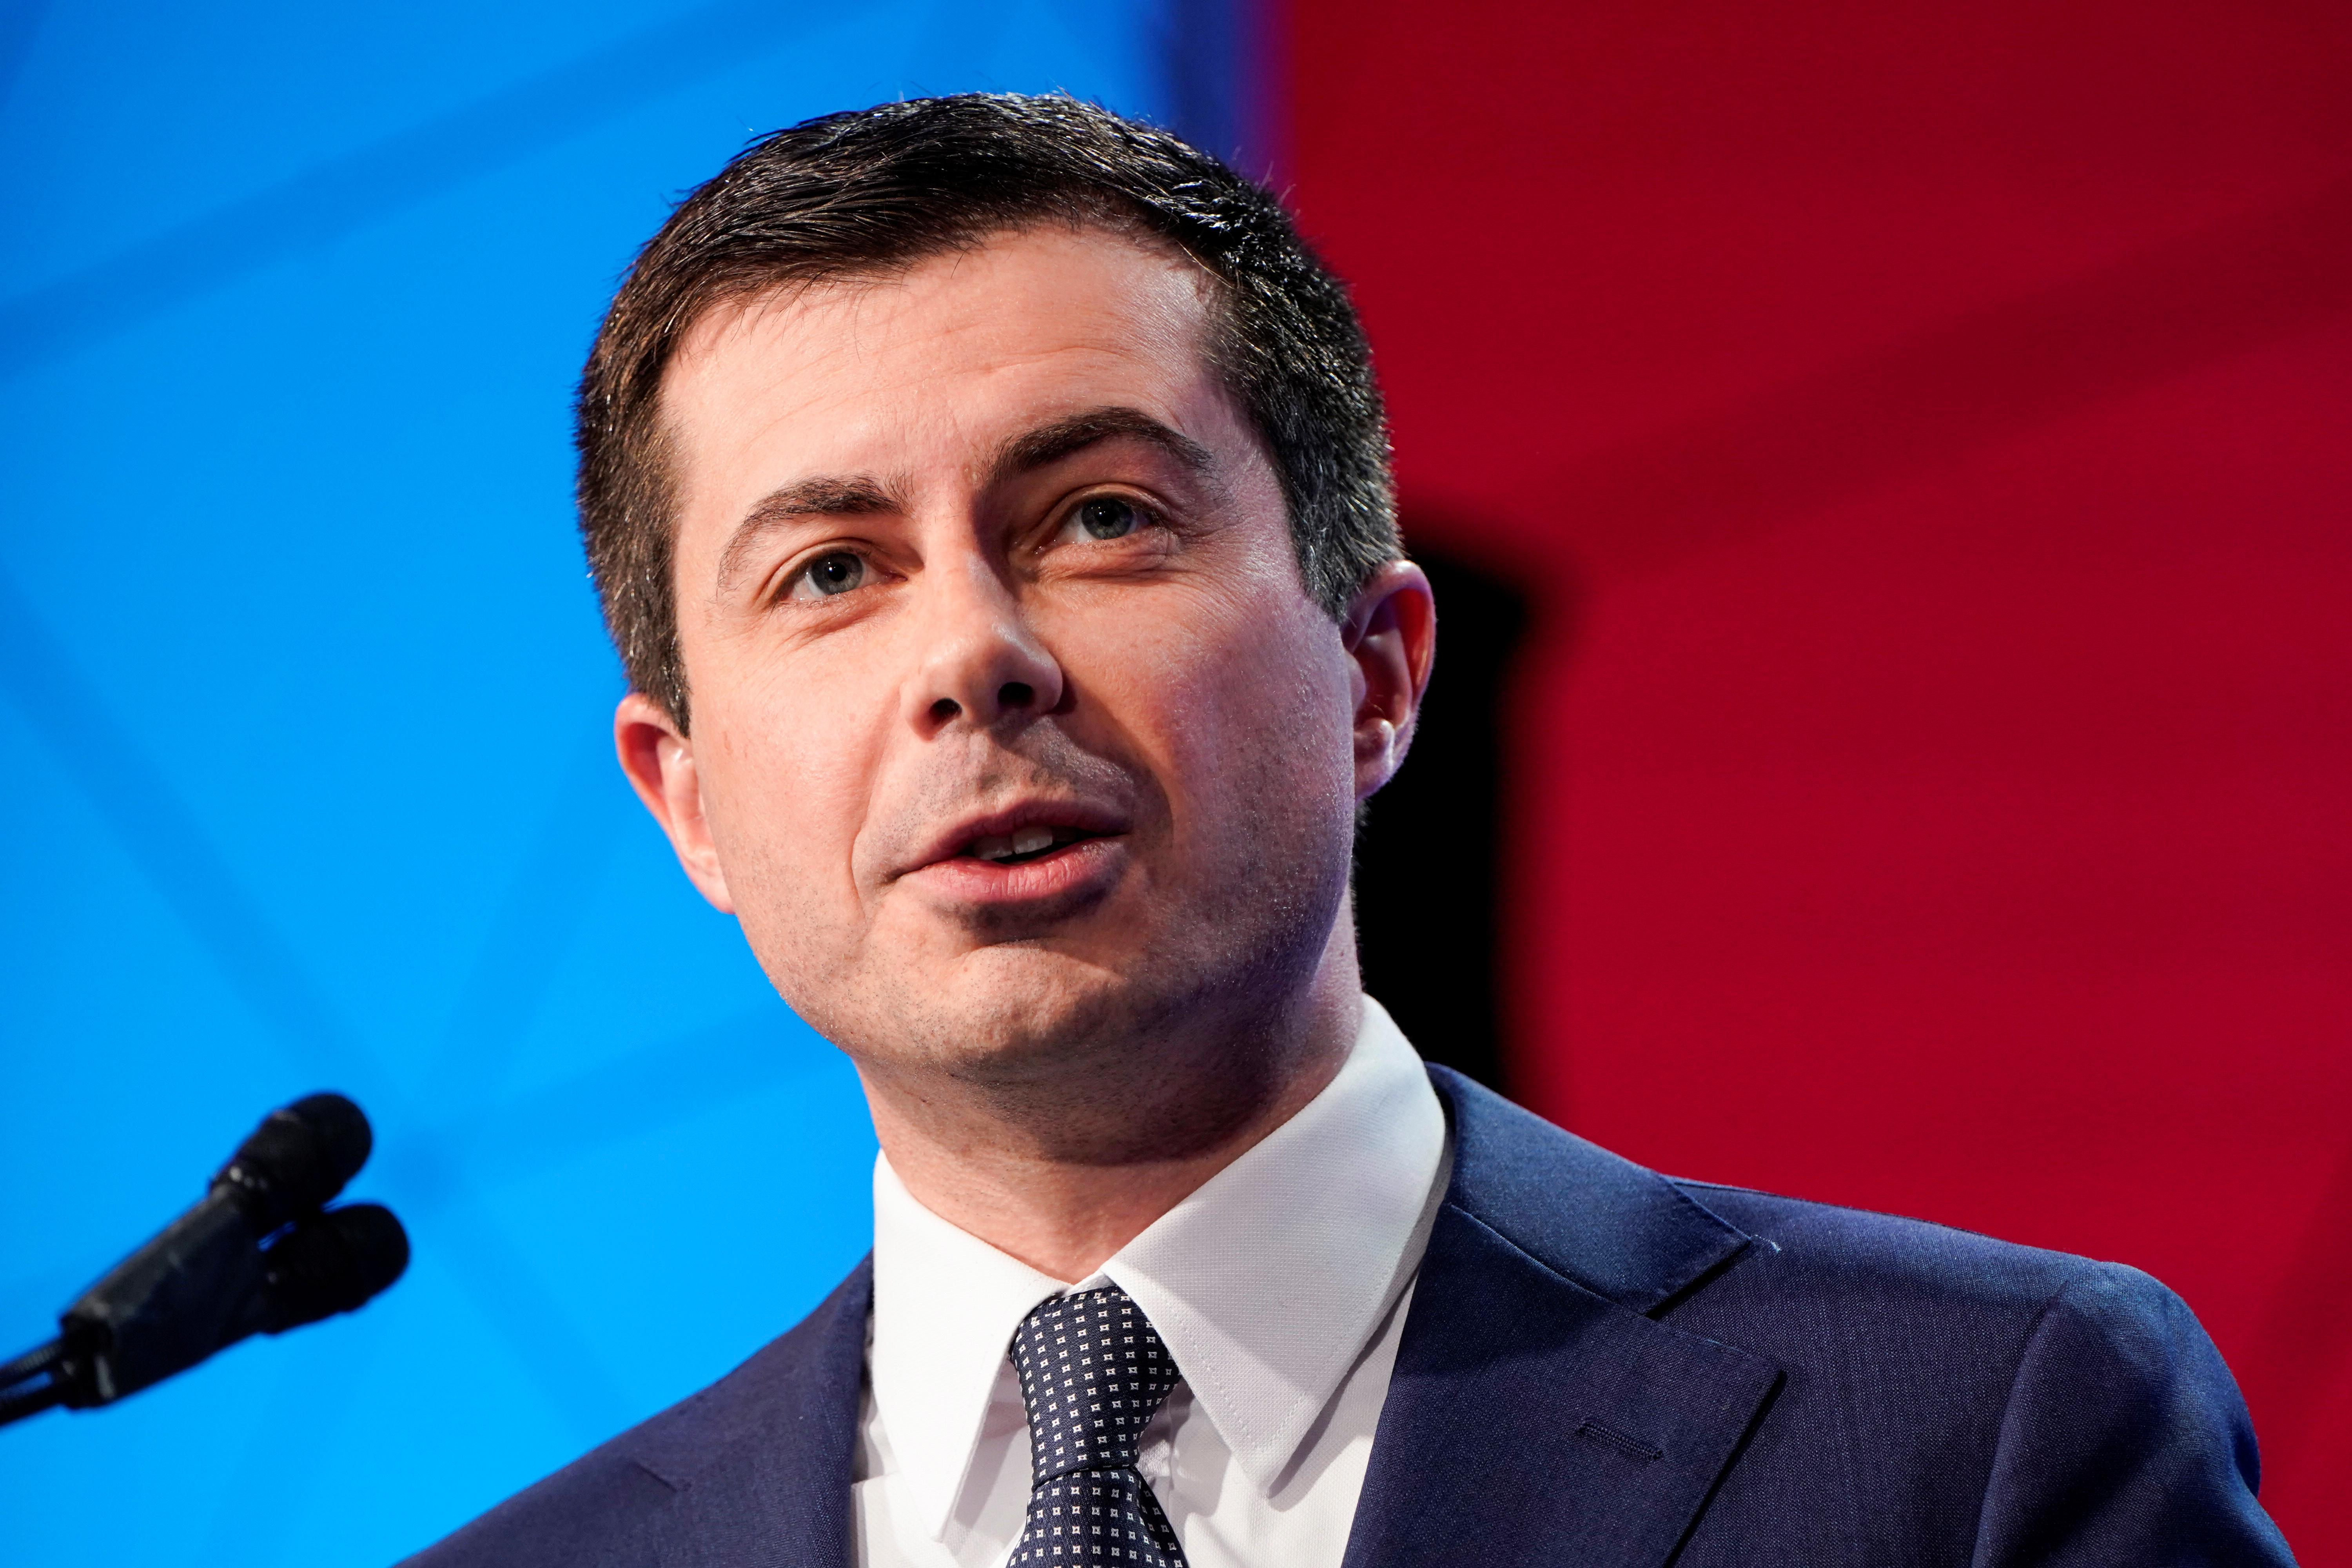 Buttigieg's health care plan would save money while Warren and Sanders plans would cost trillions, analysis finds